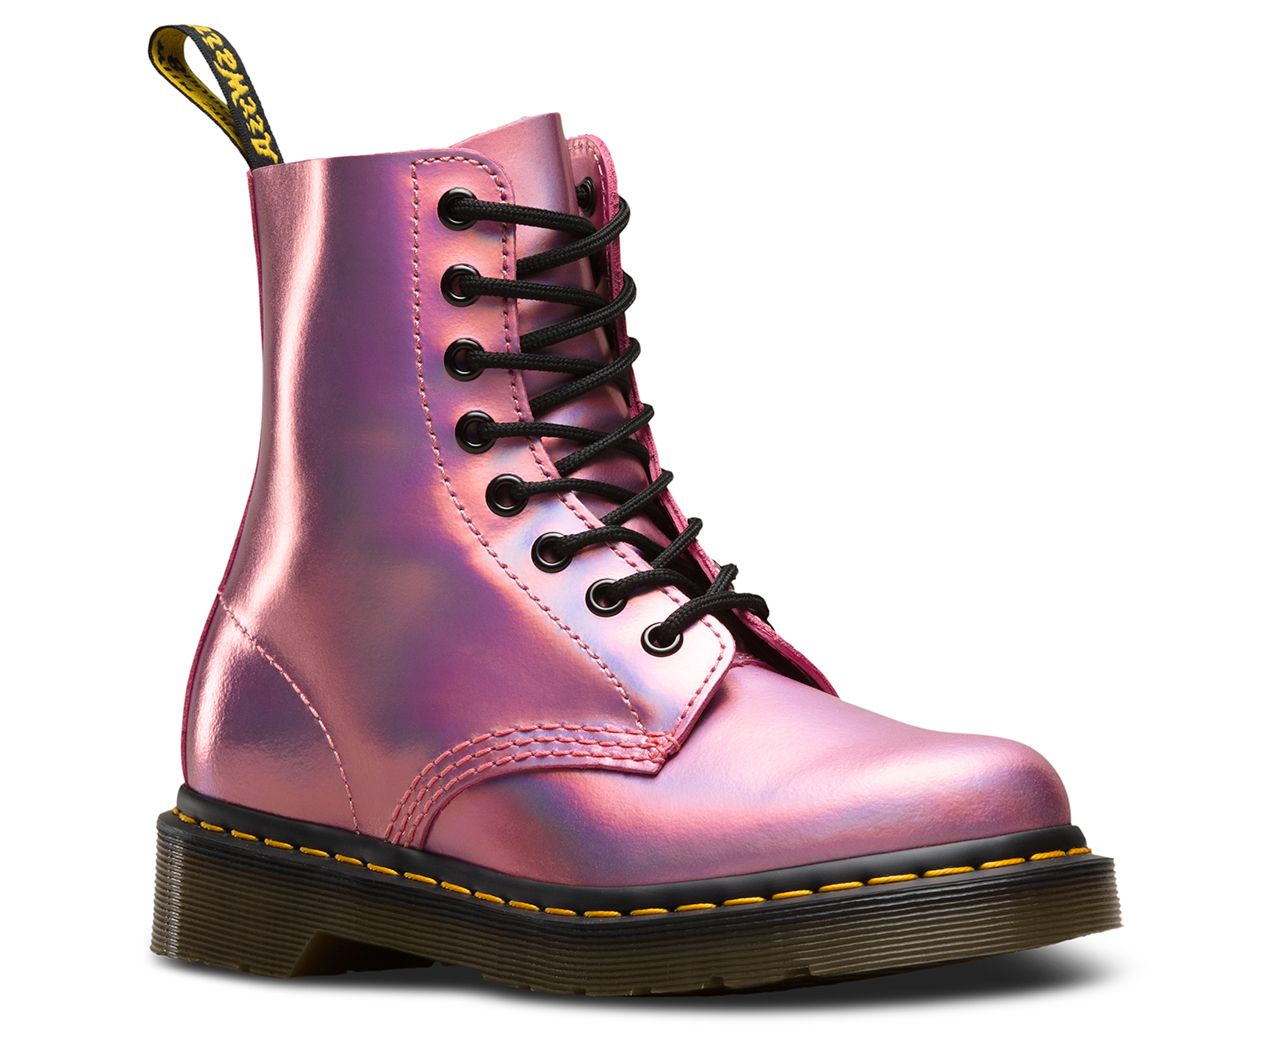 DR MARTENS ICED METALLIC 1460 PASCAL